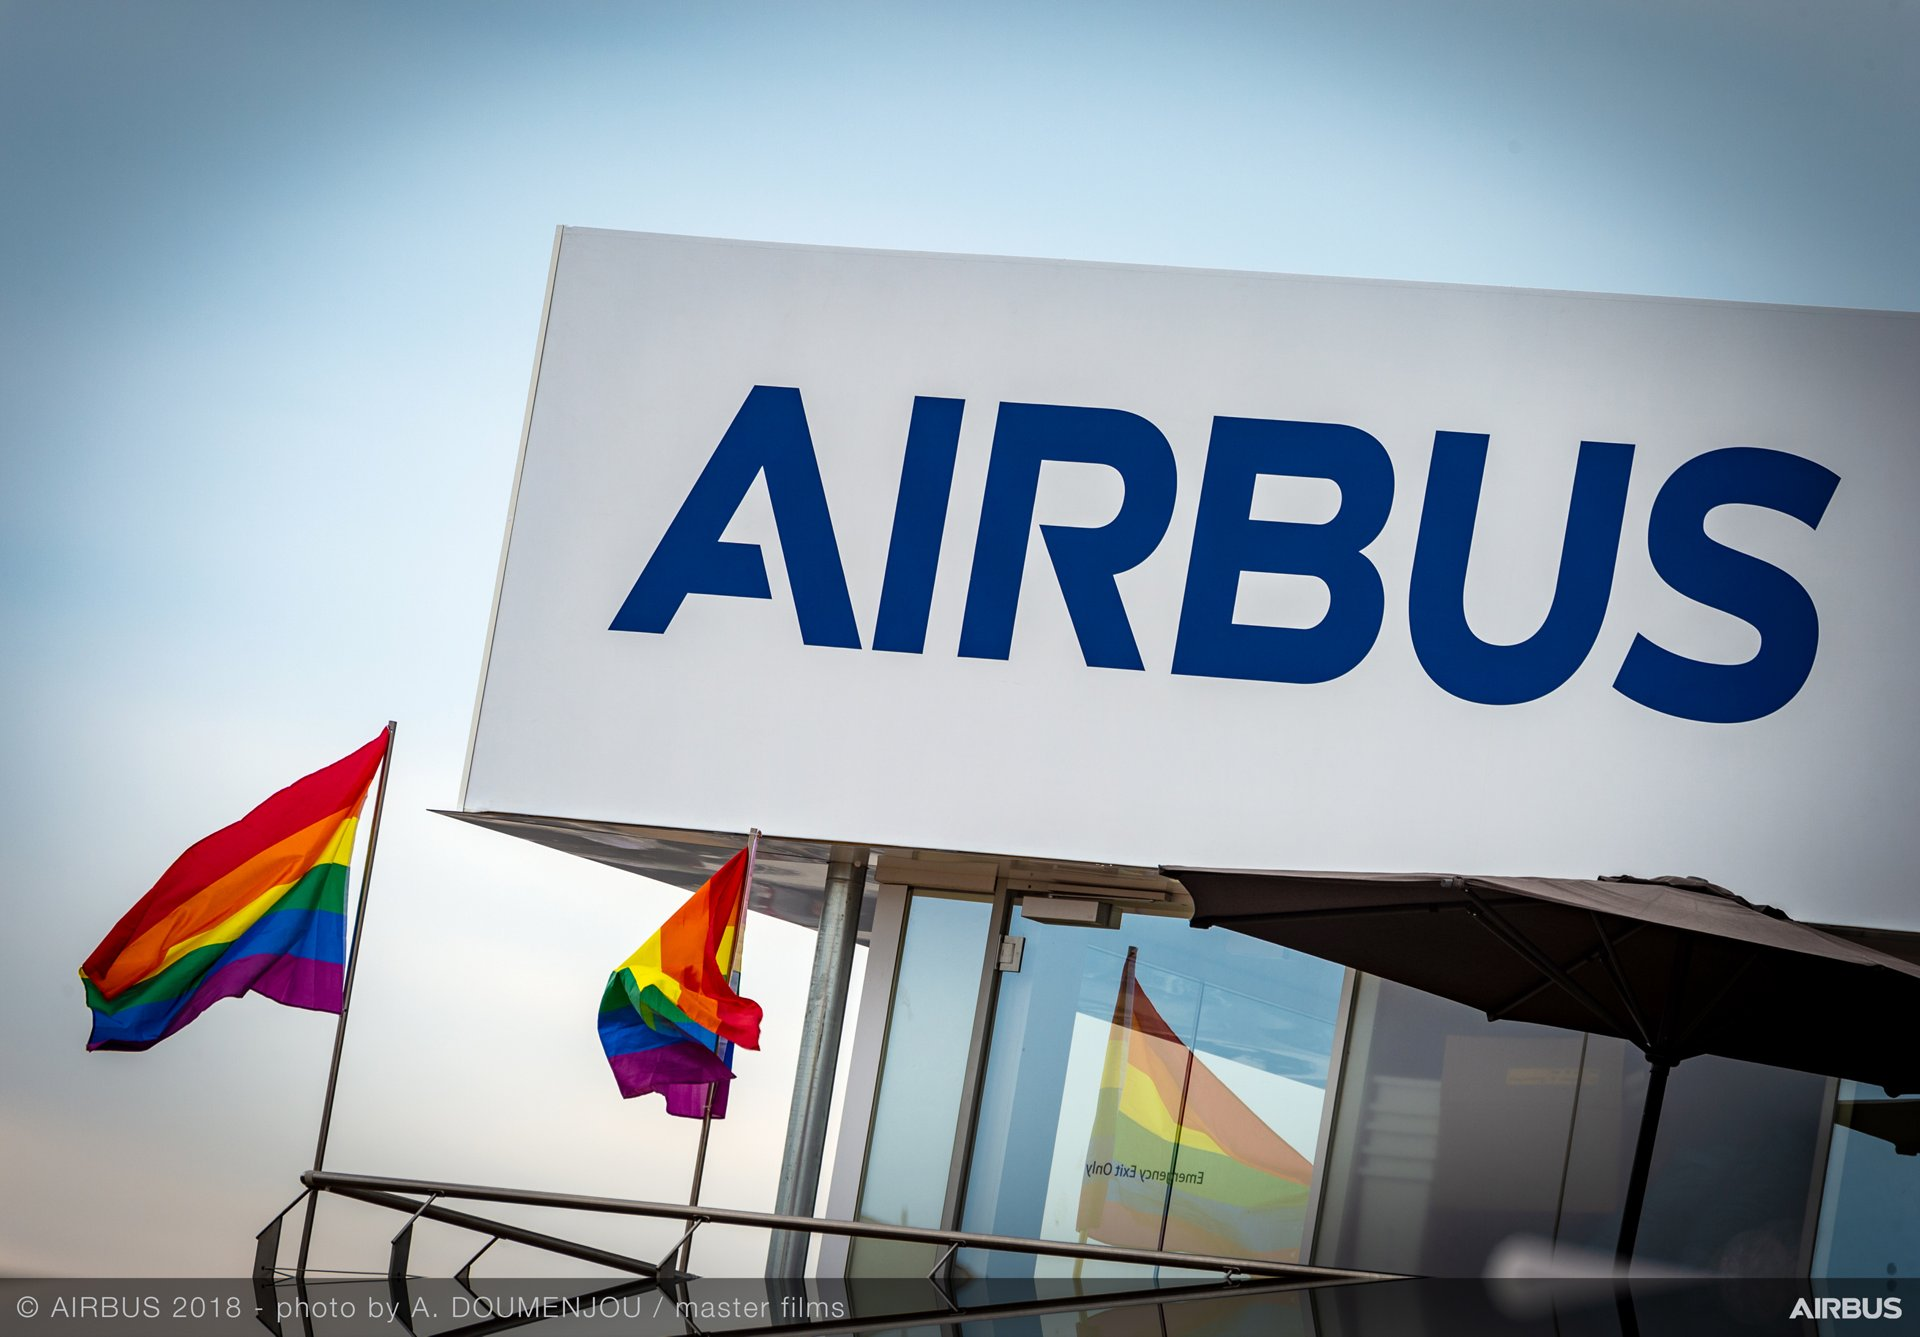 Airbus' pavilion with LGBT flags, at Farnborough Airshow 2018